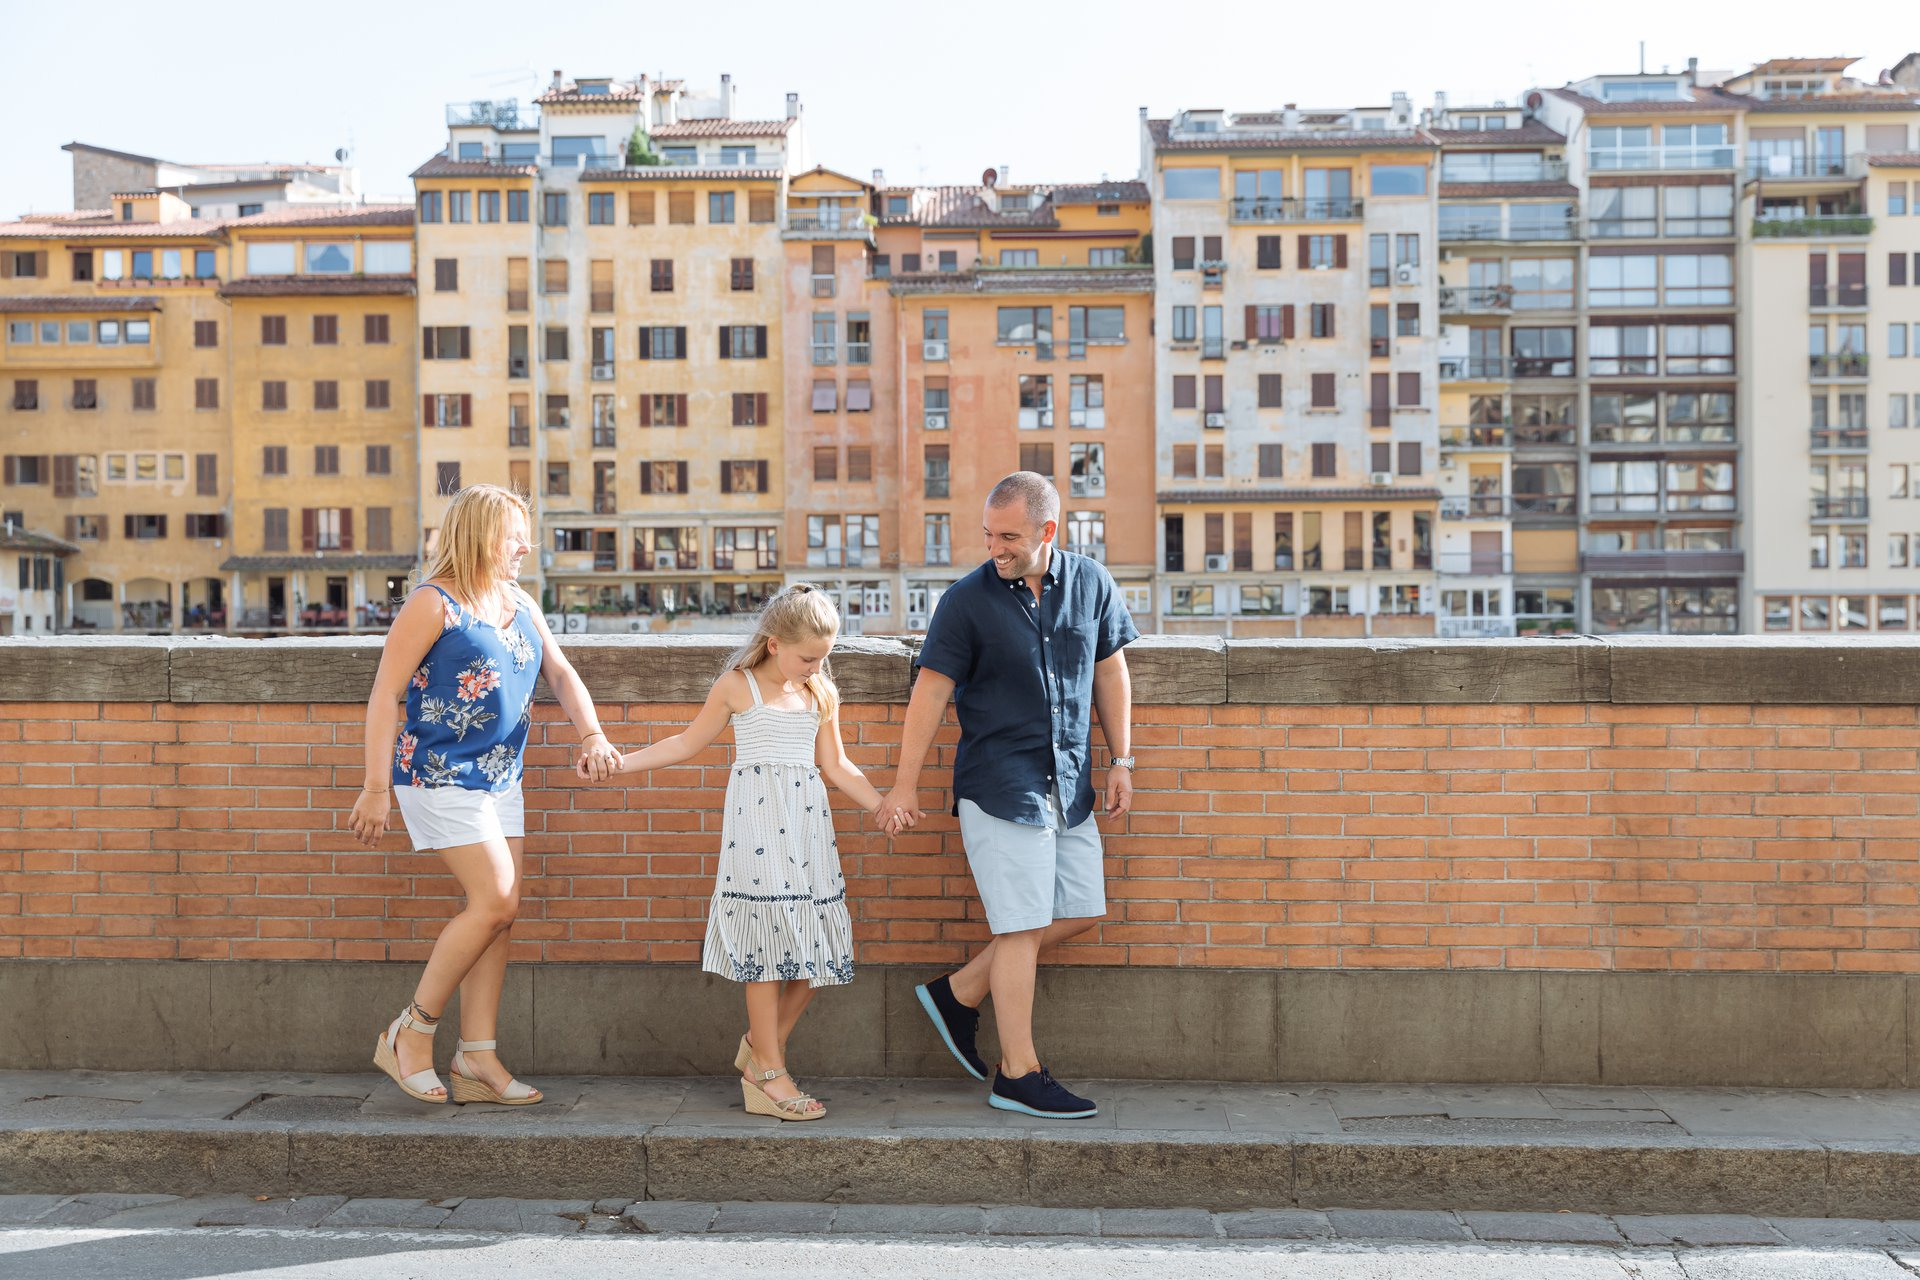 Florence-Italy-travel-story-Flytographer-48